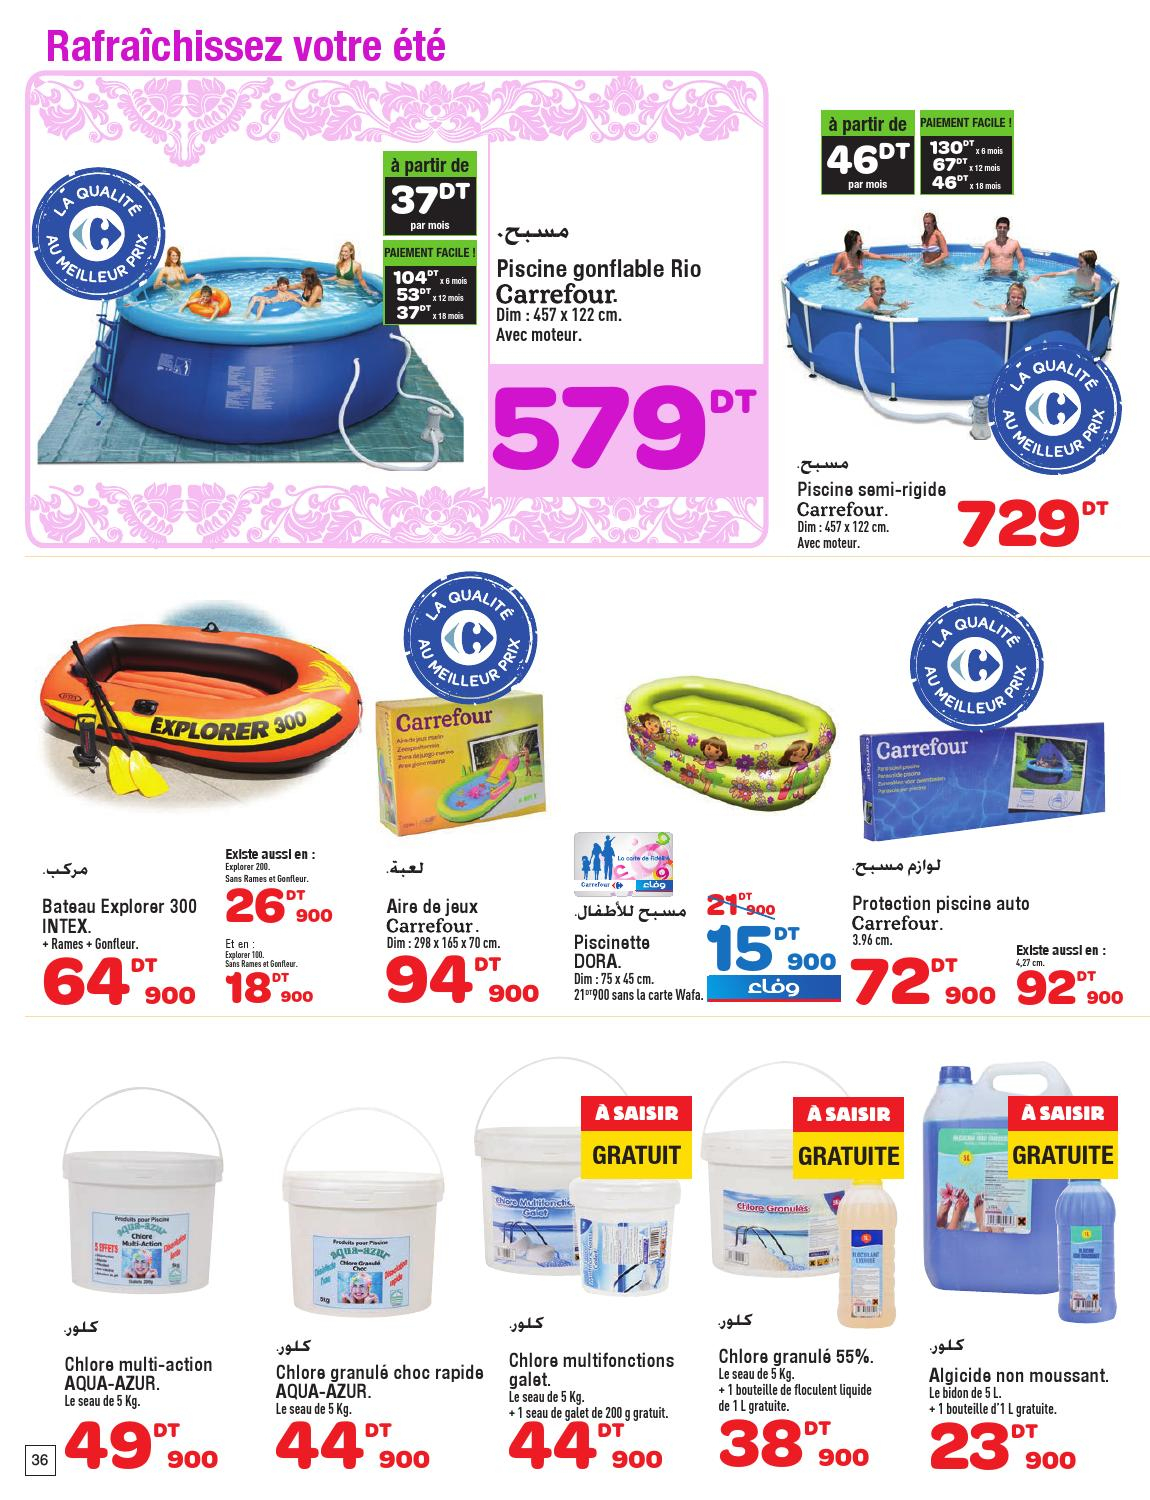 Catalogue Carrefour By Carrefour Tunisie - Issuu tout Carrefour Piscine Hors Sol